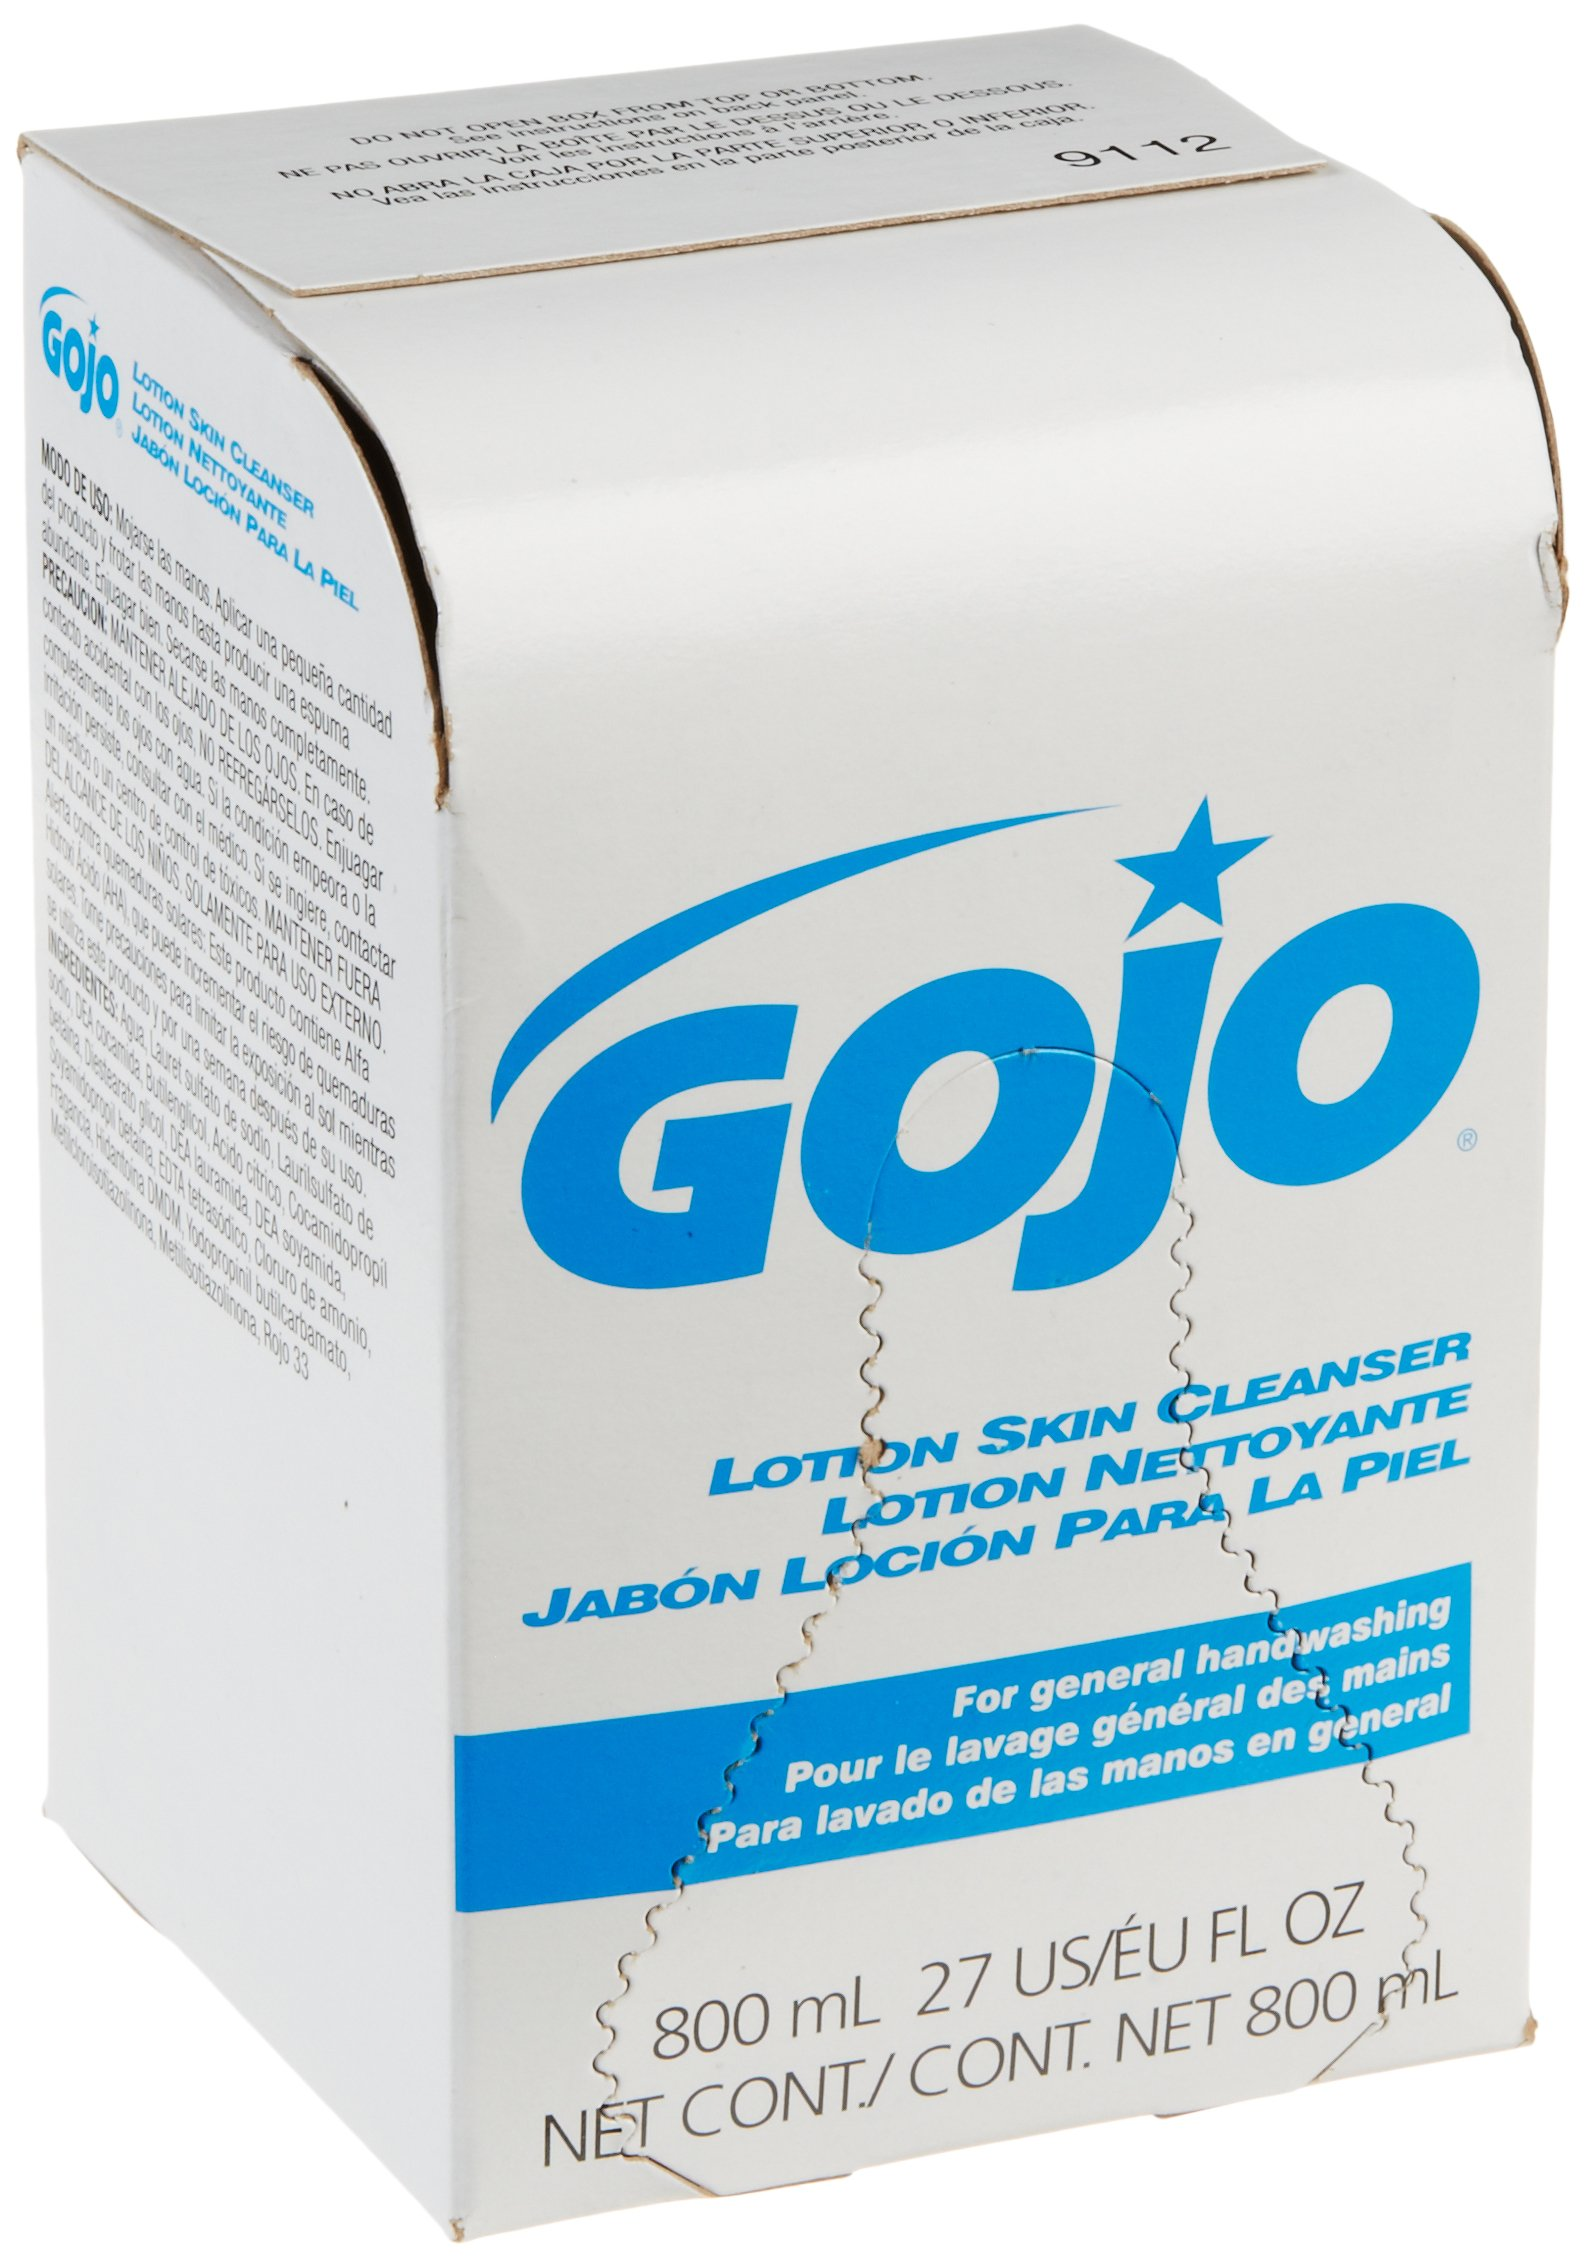 GOJO 800 Series Lotion Soap Skin Cleanser, Light Floral Scent, 800 mL Lotion Soap Refill for Bag-in-Box Soap Dispenser (Case of 12) - 9112-12